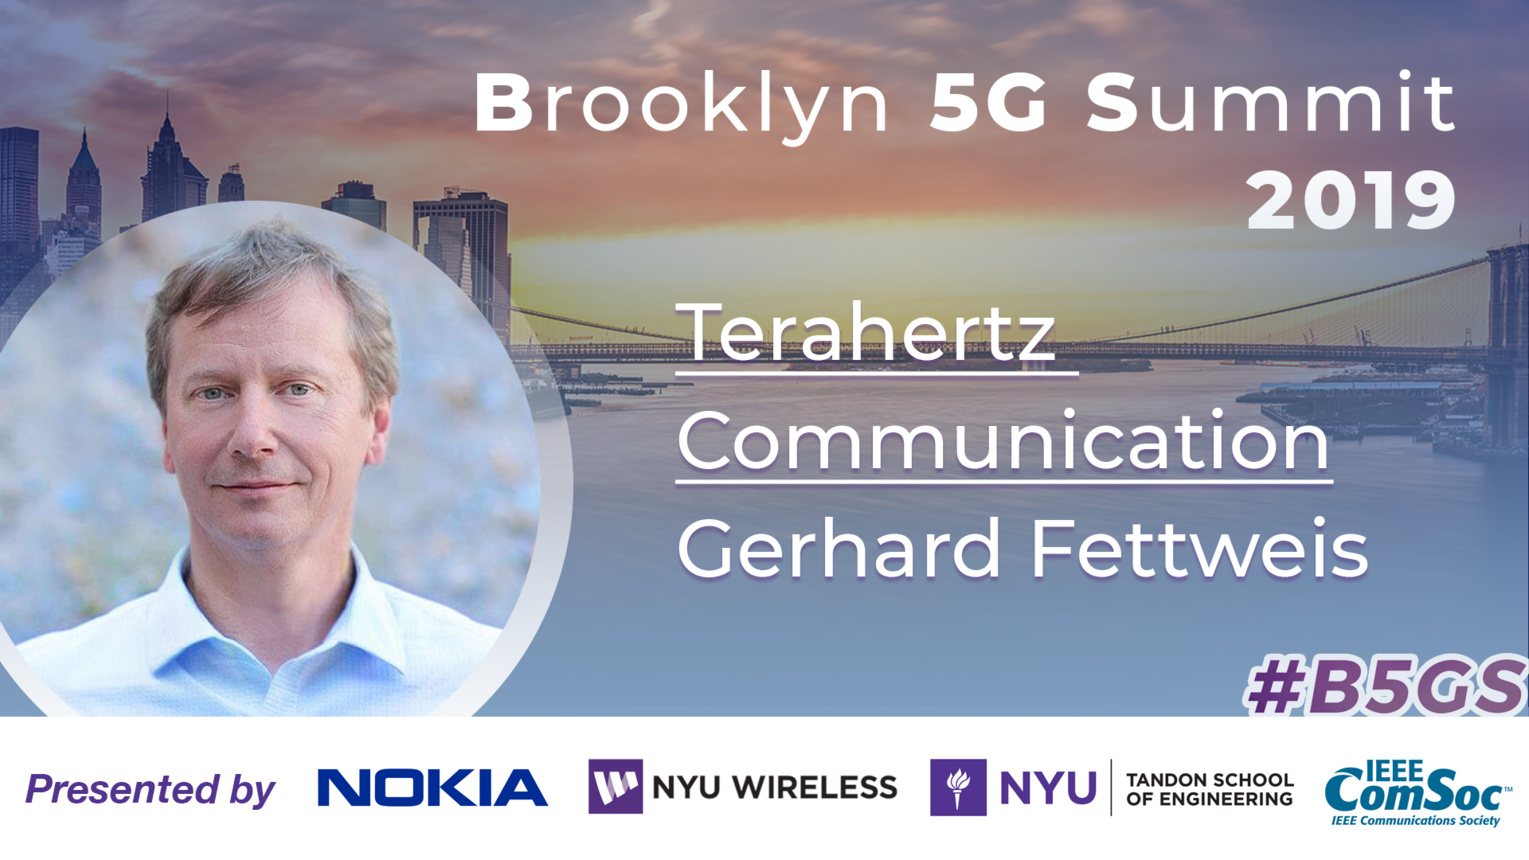 Keynote: Gerhard Fettweis - Terahertz Communication - B5GS 2019